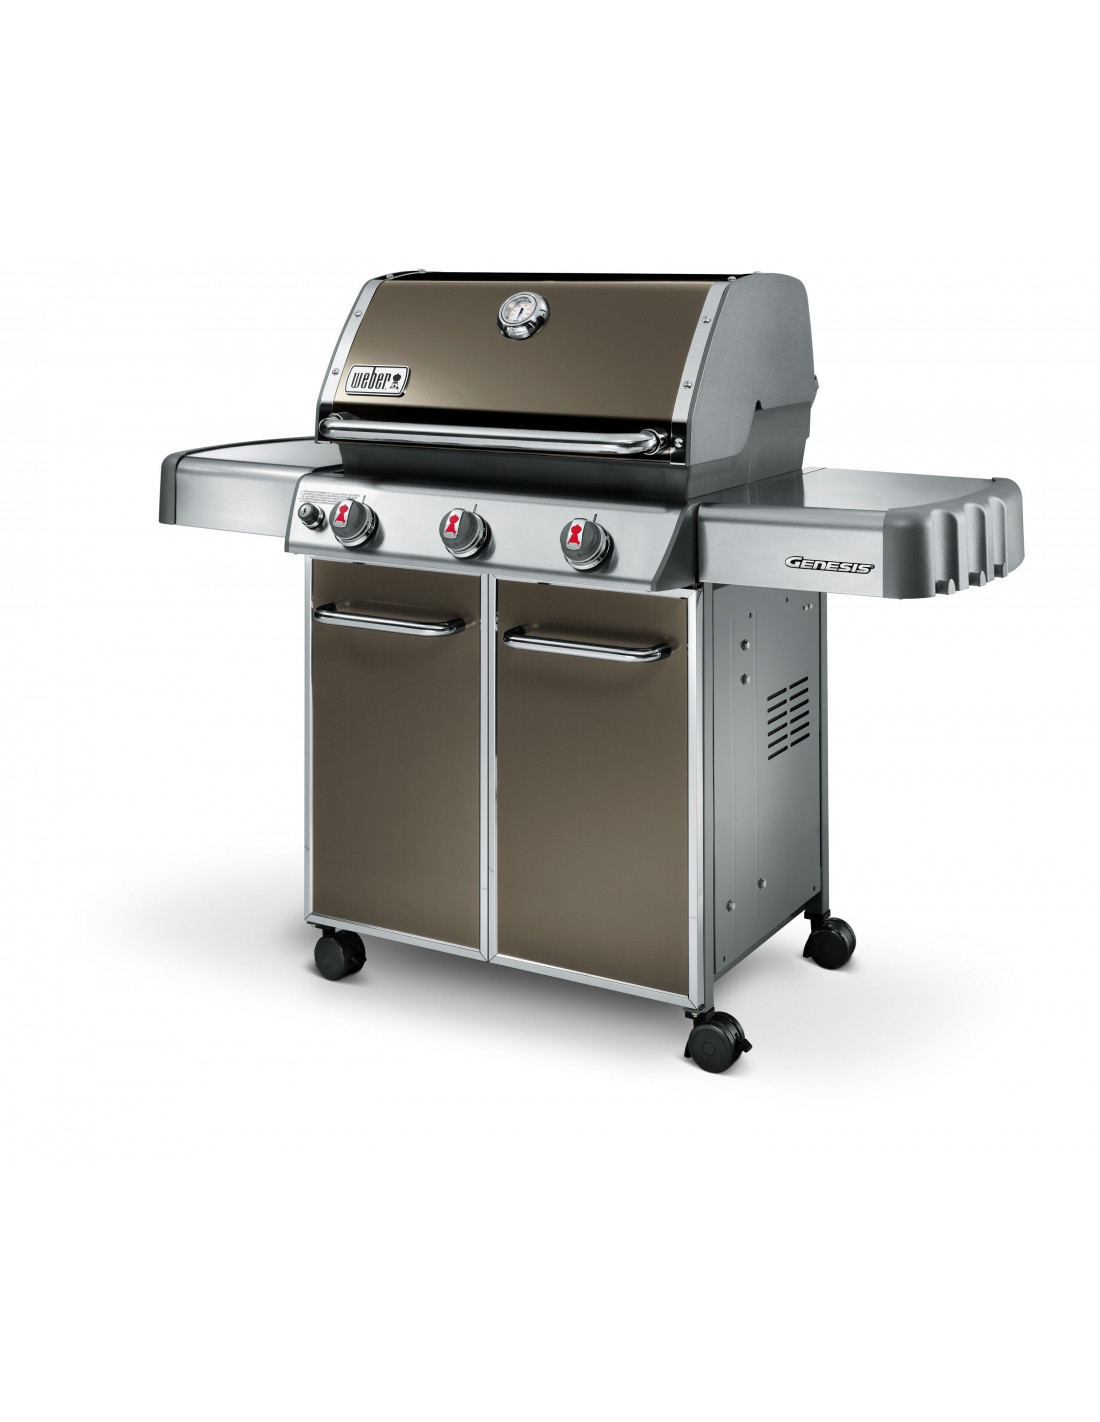 barbecue weber gaz e310